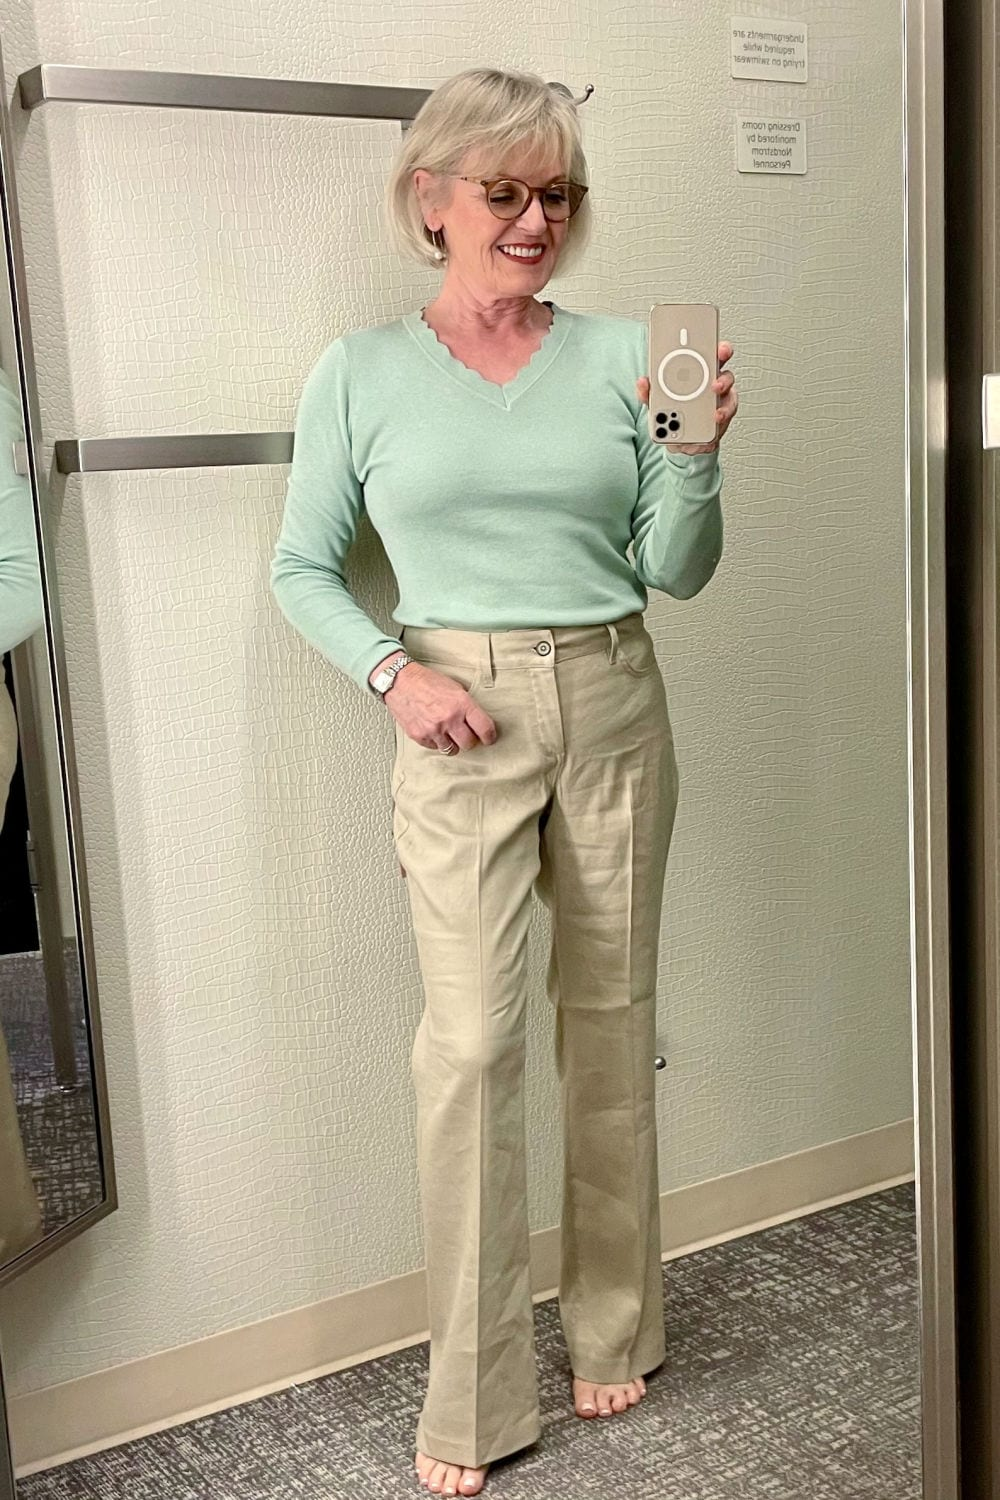 blonde woman in dressing room trying on green sweater and beige linen pants